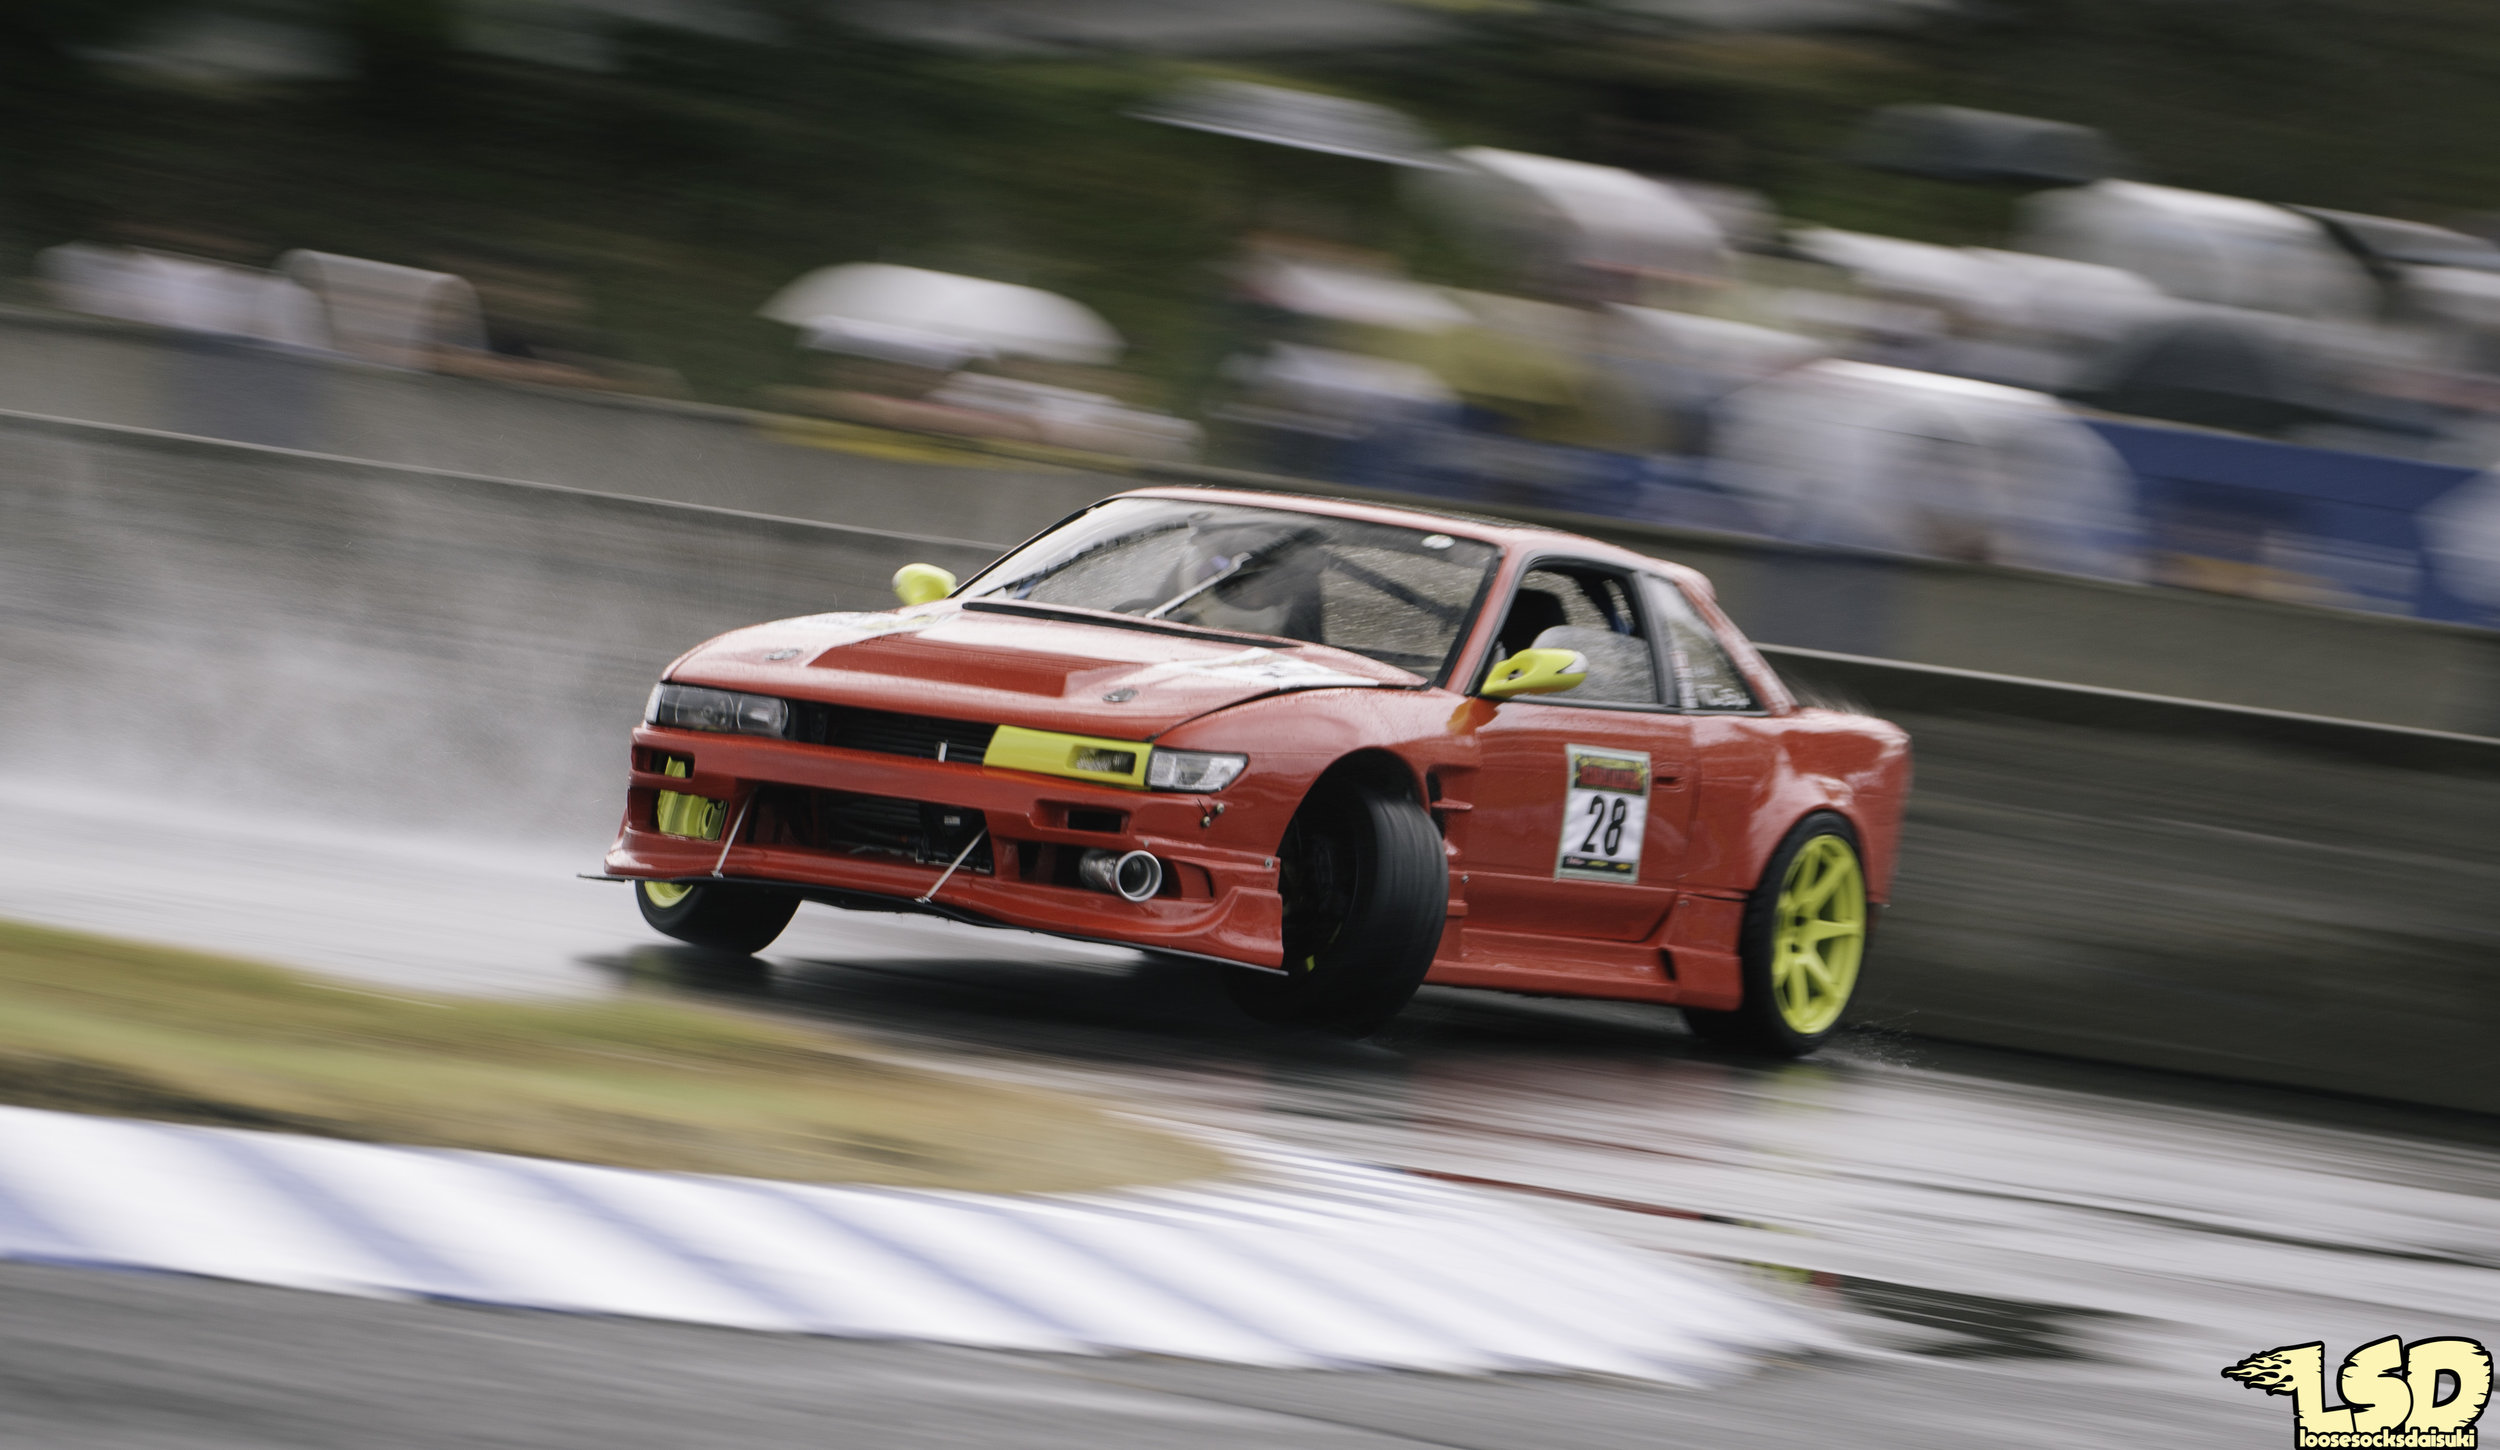 This s13 was one of my favorites Owner: Masakazu Doi